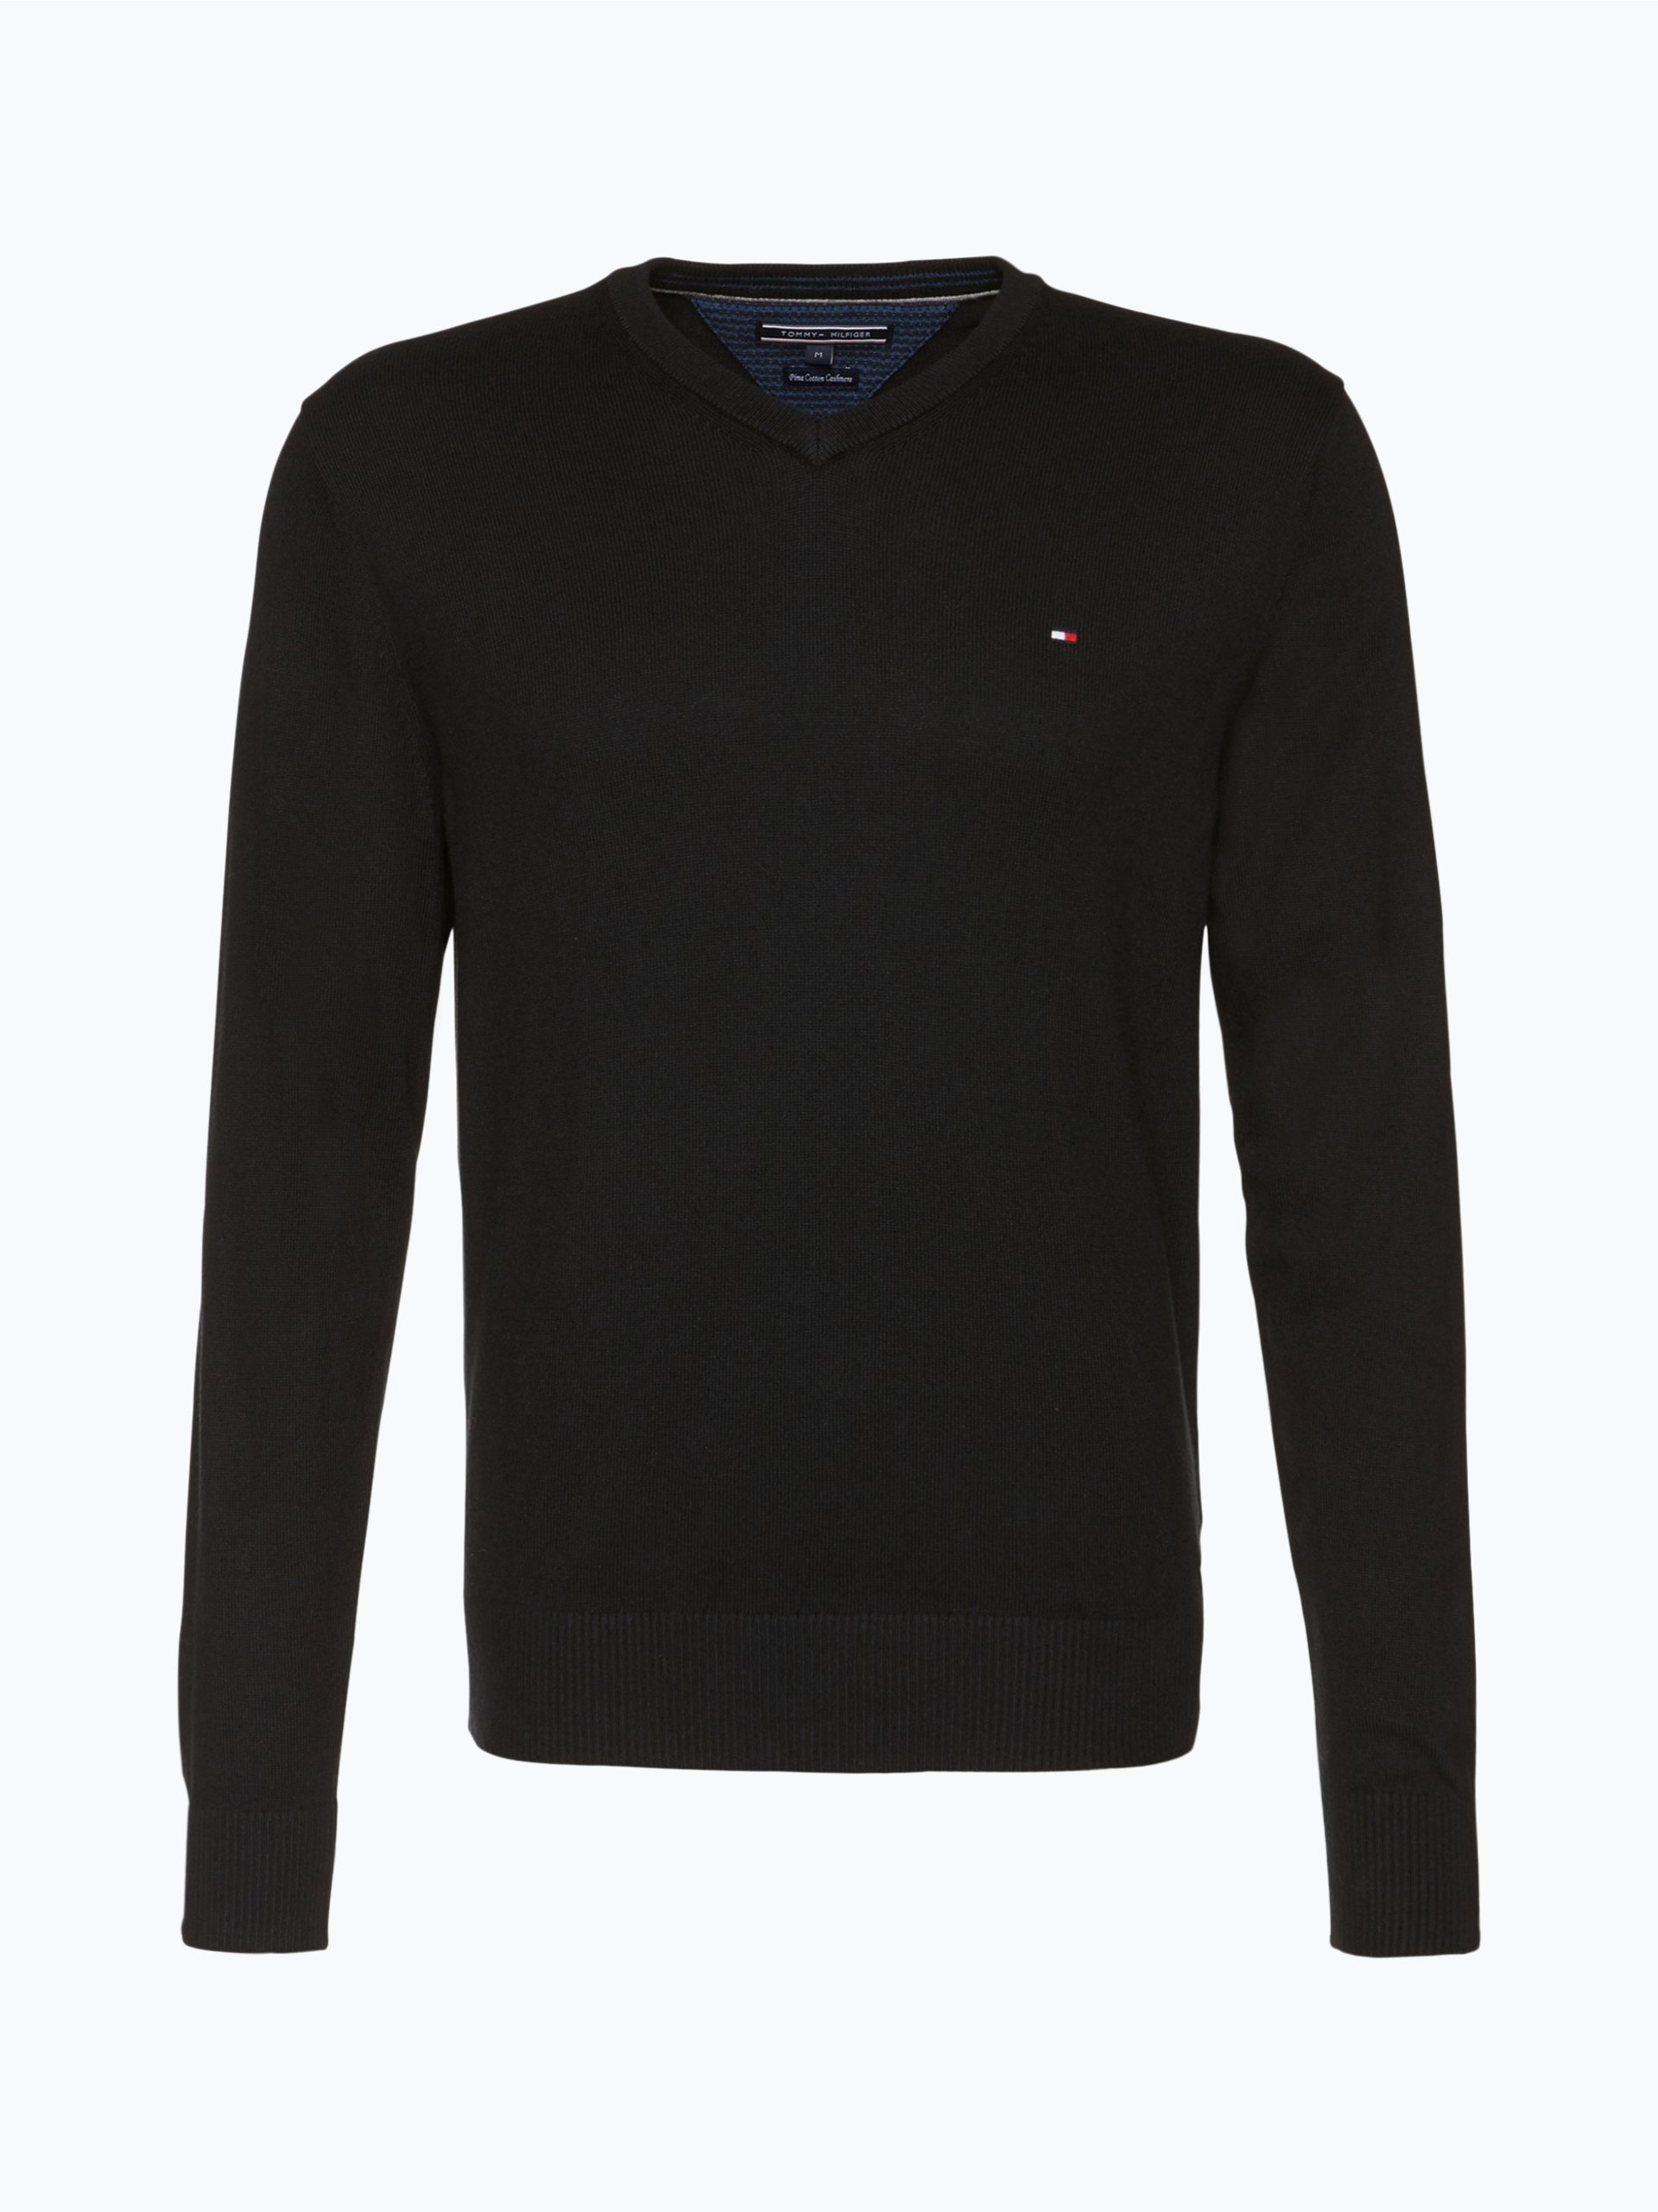 tommy hilfiger herren pullover mit cashmere anteil schwarz. Black Bedroom Furniture Sets. Home Design Ideas